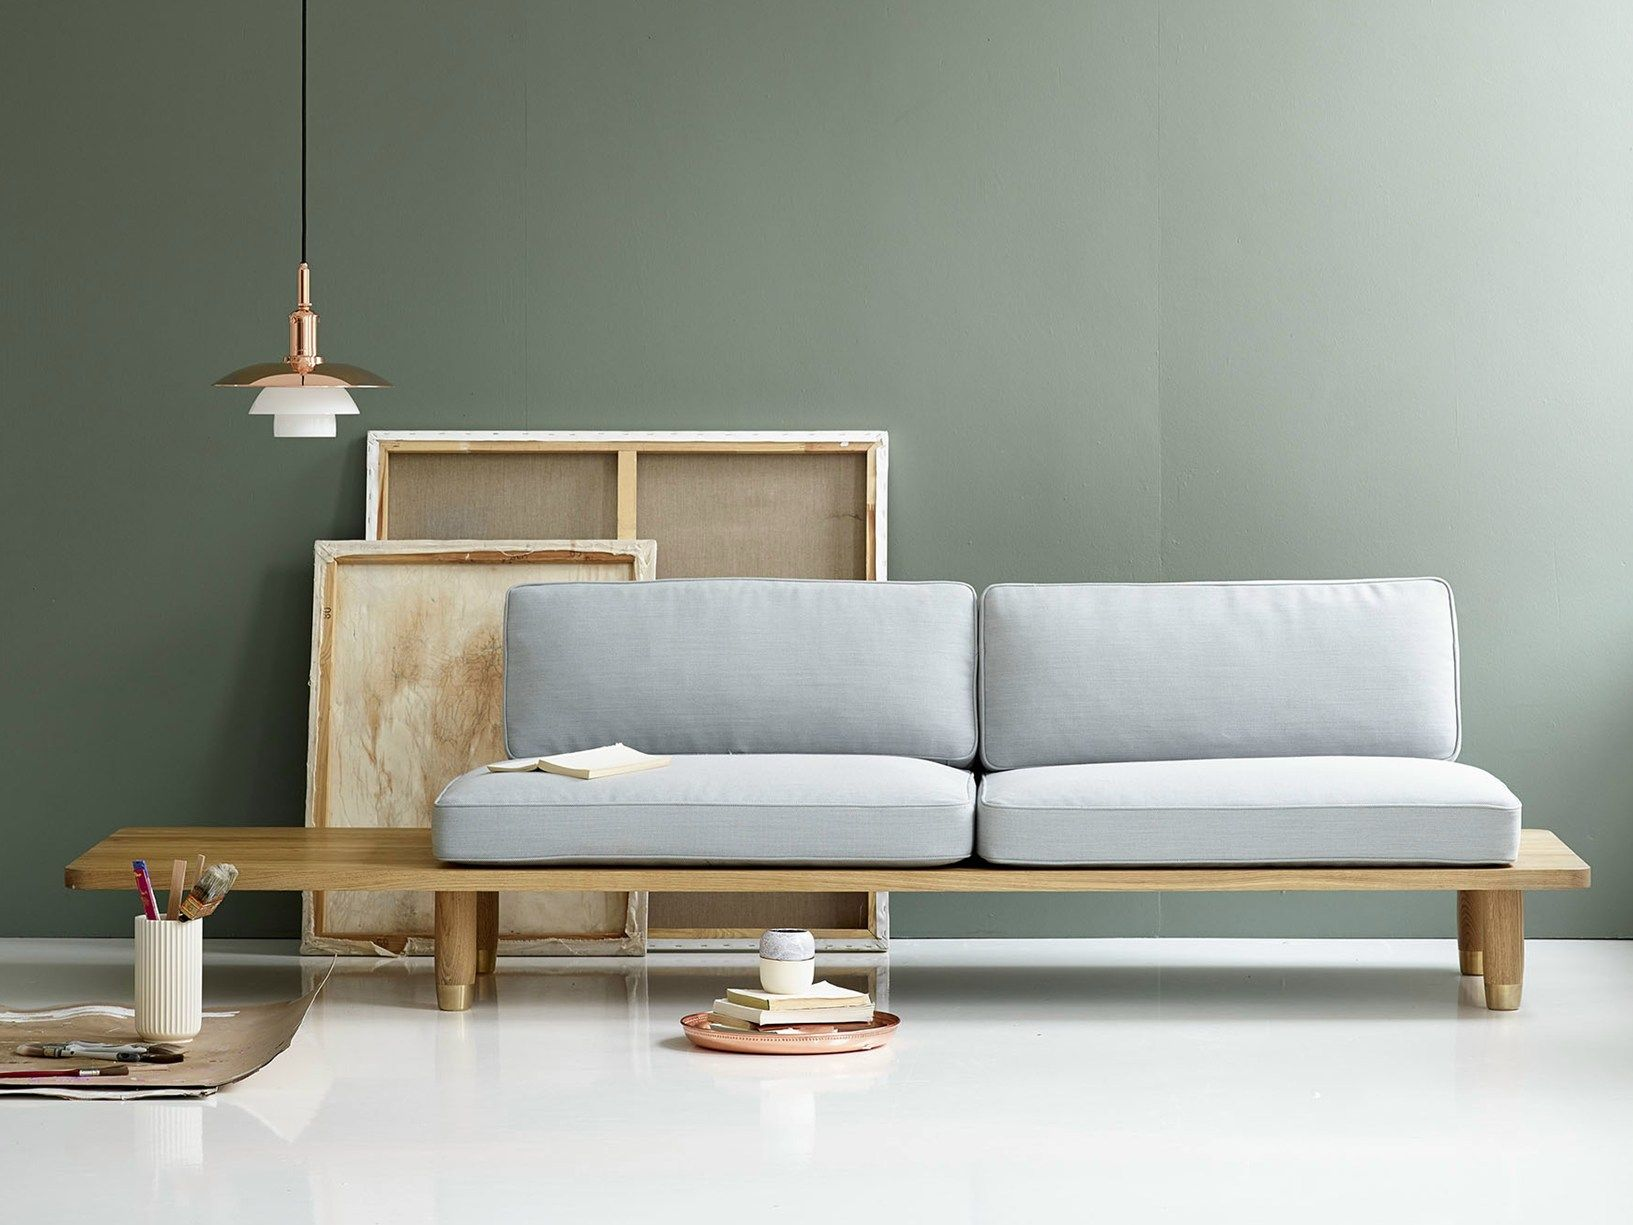 Scandinavian style, international elegance: Plank Sofa by dk3